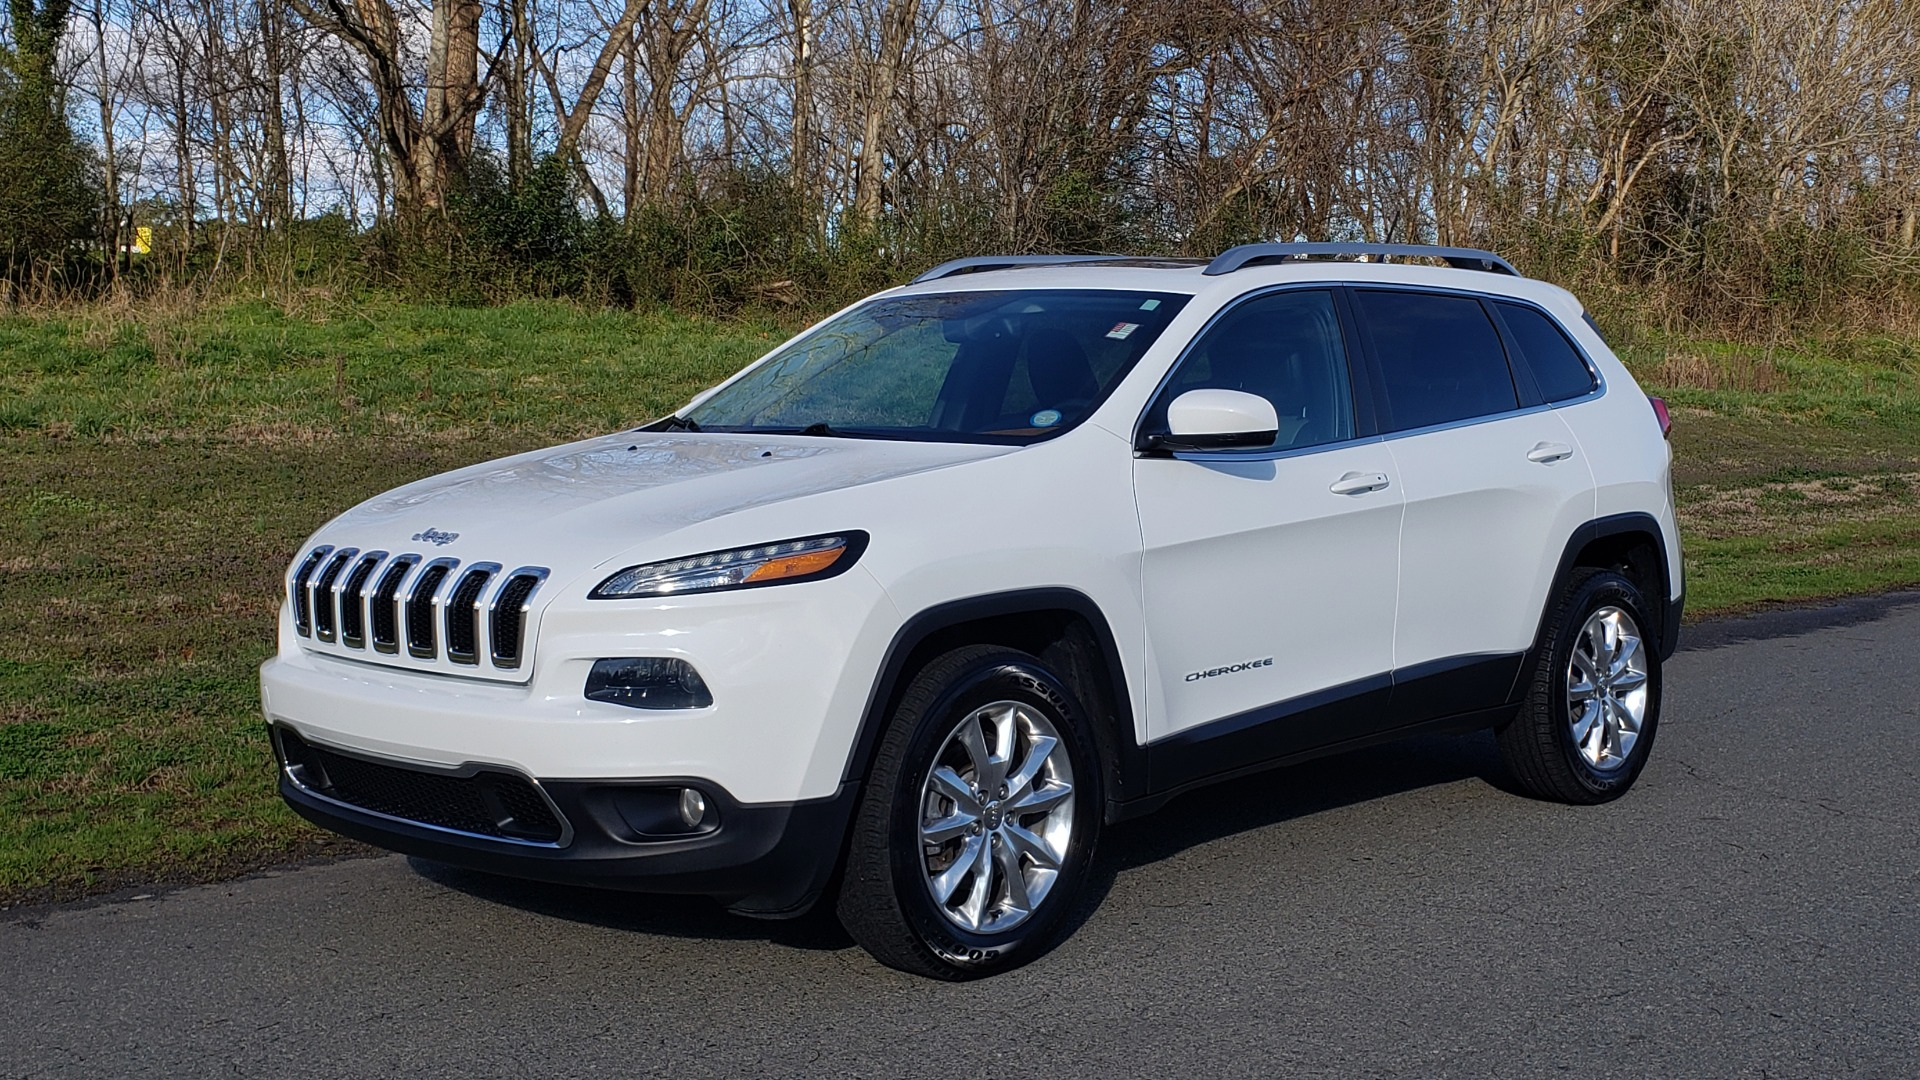 Used 2014 Jeep CHEROKEE LIMITED 4WD / 3.2L V6 / 9SPD AUTO / DUAL-SUNROOF / TOW for sale Sold at Formula Imports in Charlotte NC 28227 1